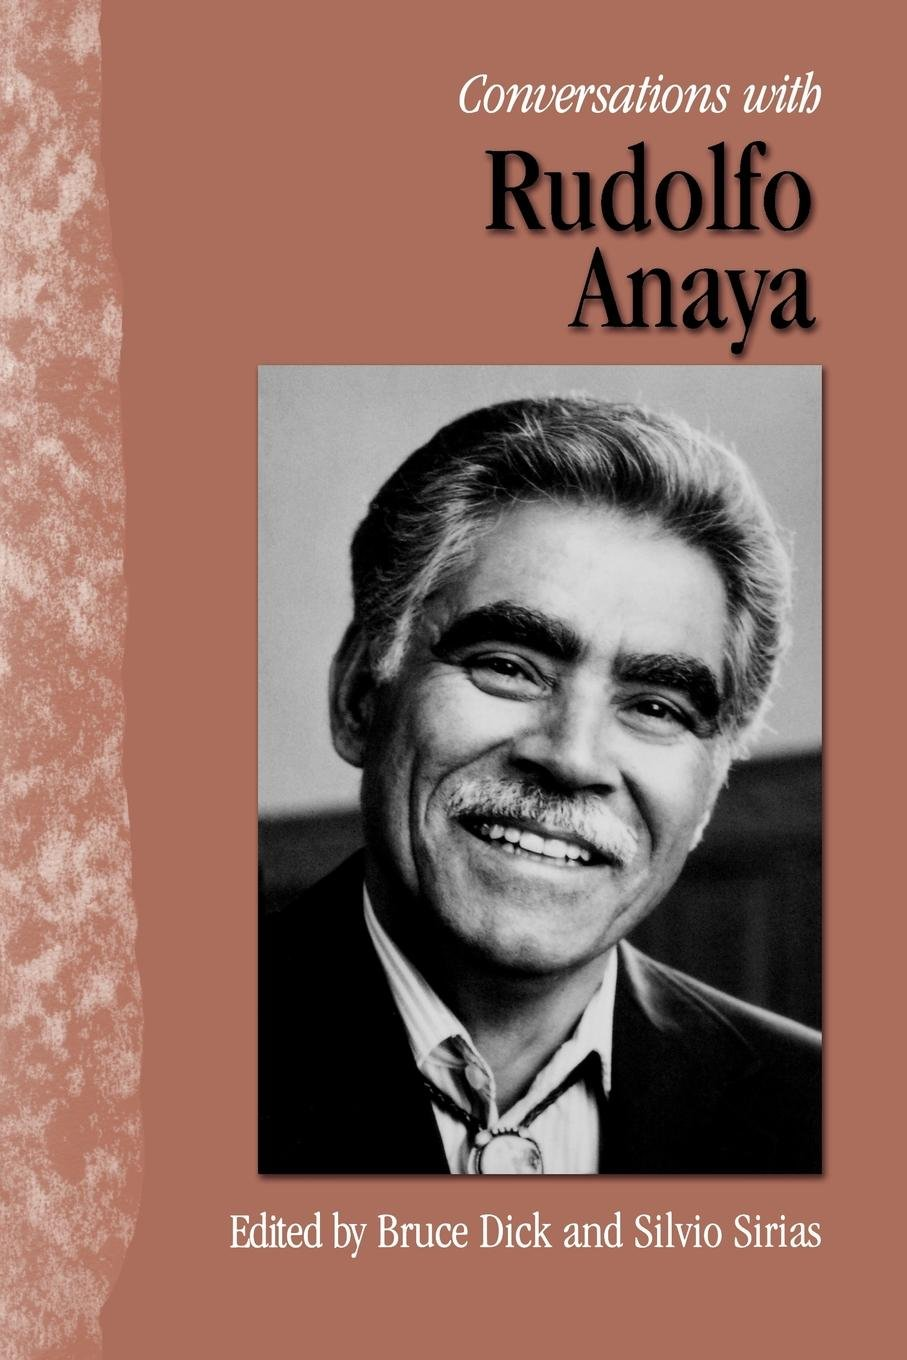 Conversations with Rudolfo Anaya (Literary Conversations Series) ebook